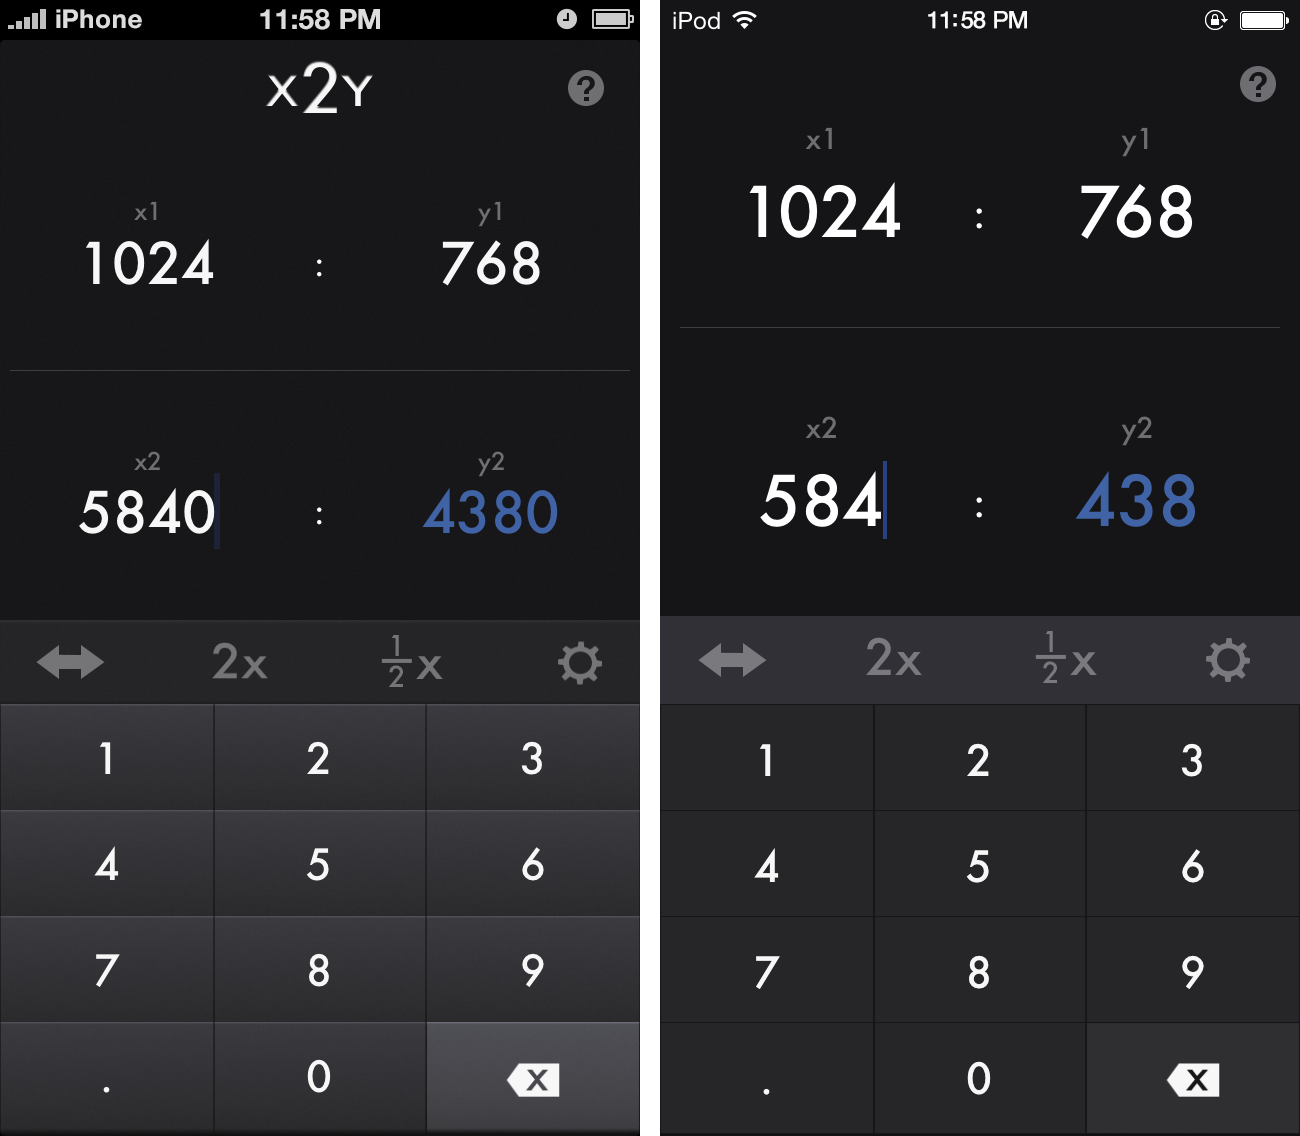 x2y in its current form on the Left. Proposed redesign for iOS 7on the right.